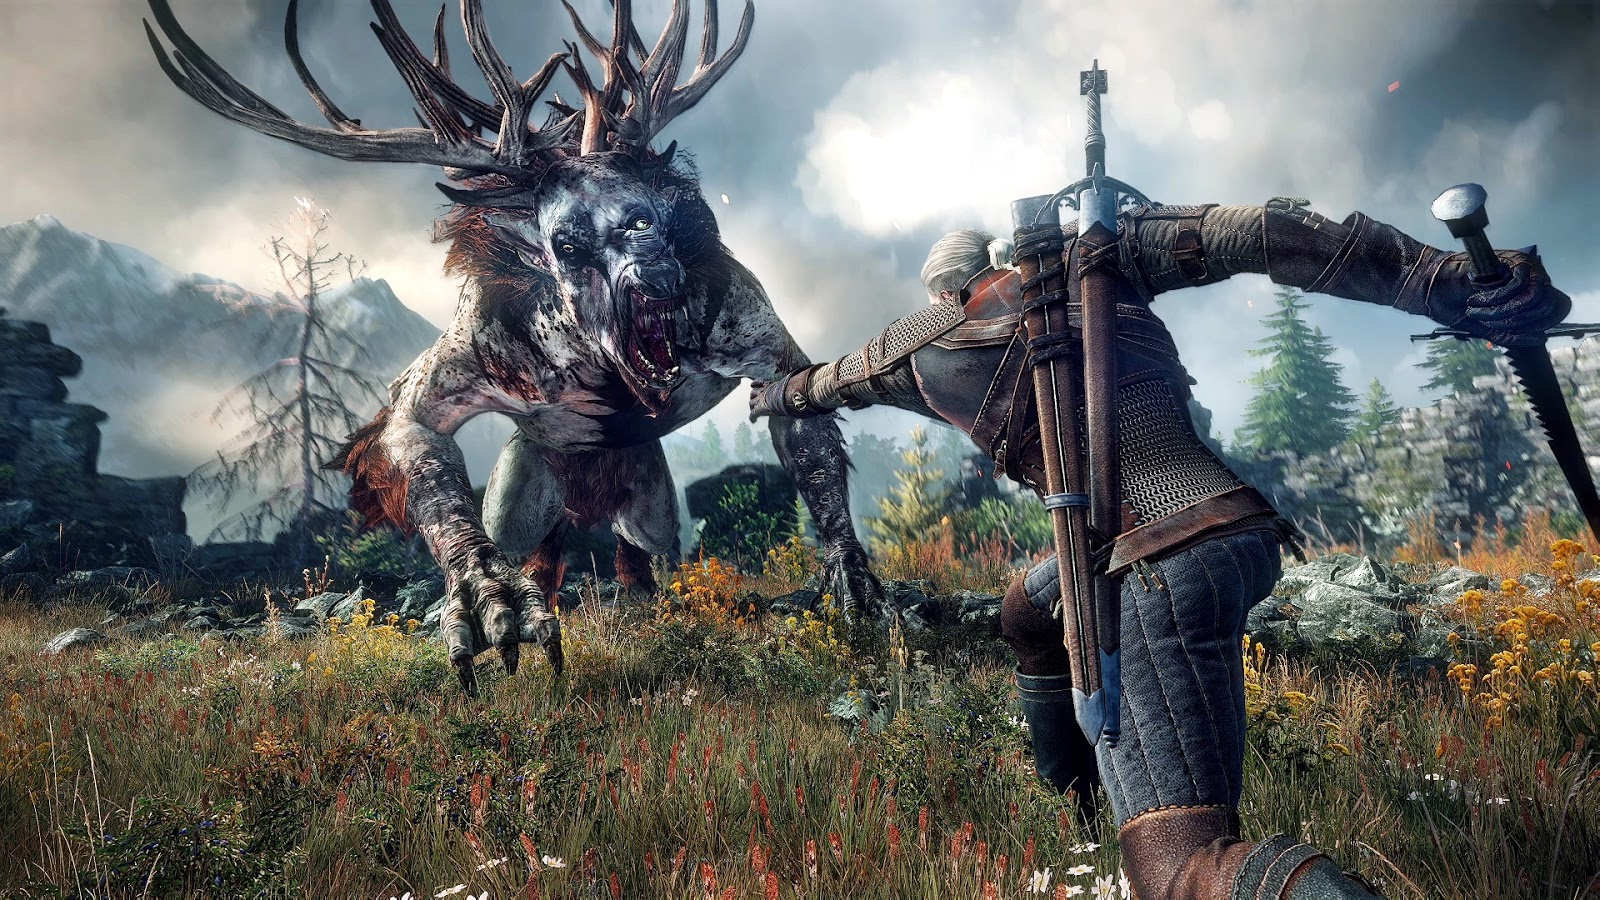 Download Exclusive The Witcher 3 Wild Hunt Wallpapers  - the witcher 3 wild hunt wallpapers